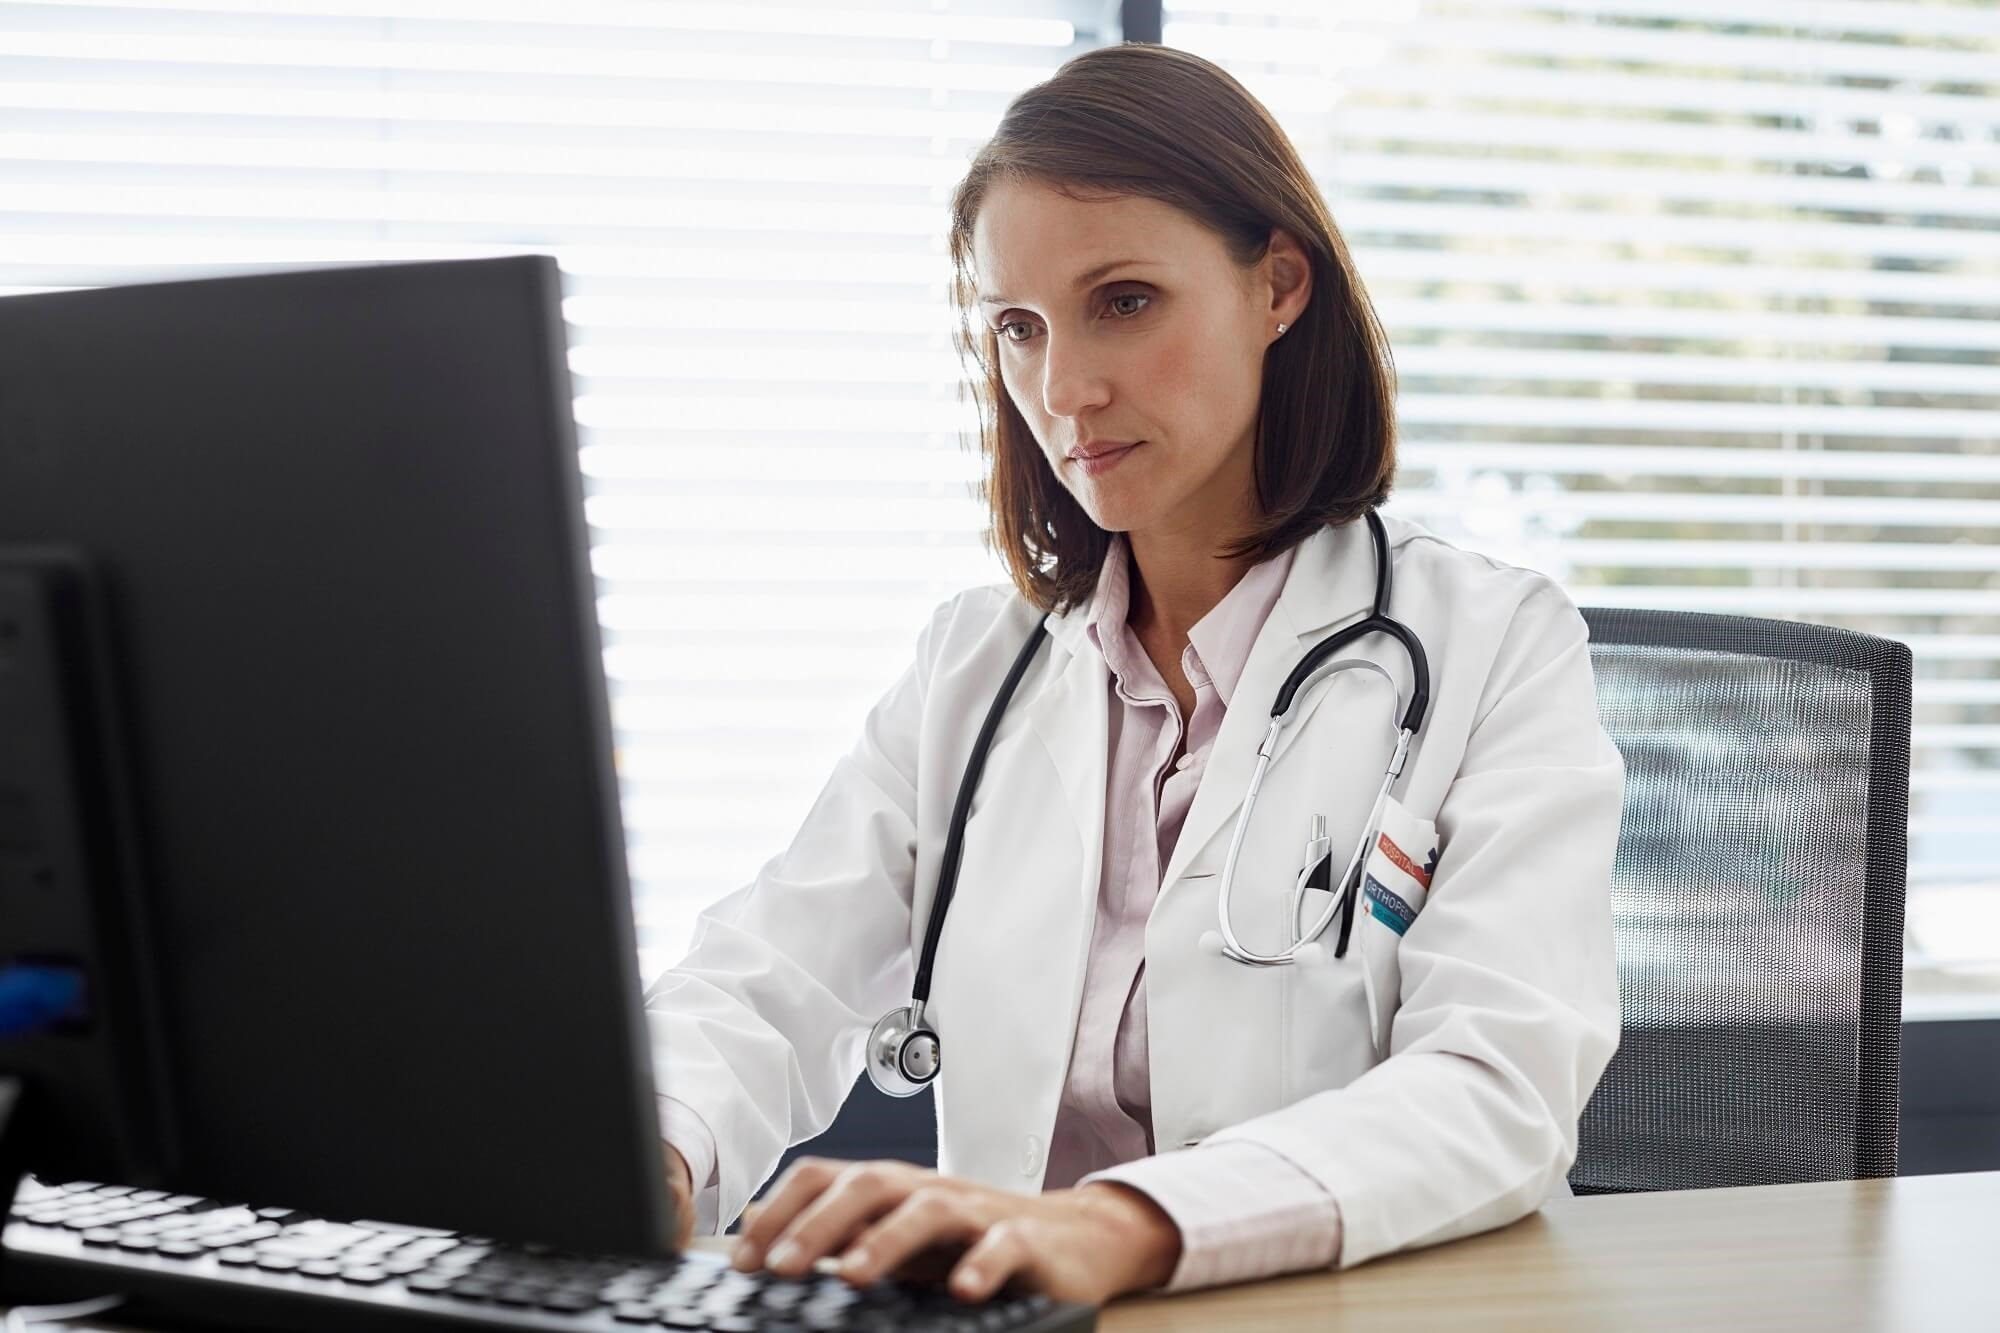 Use of Telemedicine Low for Substance Use Disorder Treatment